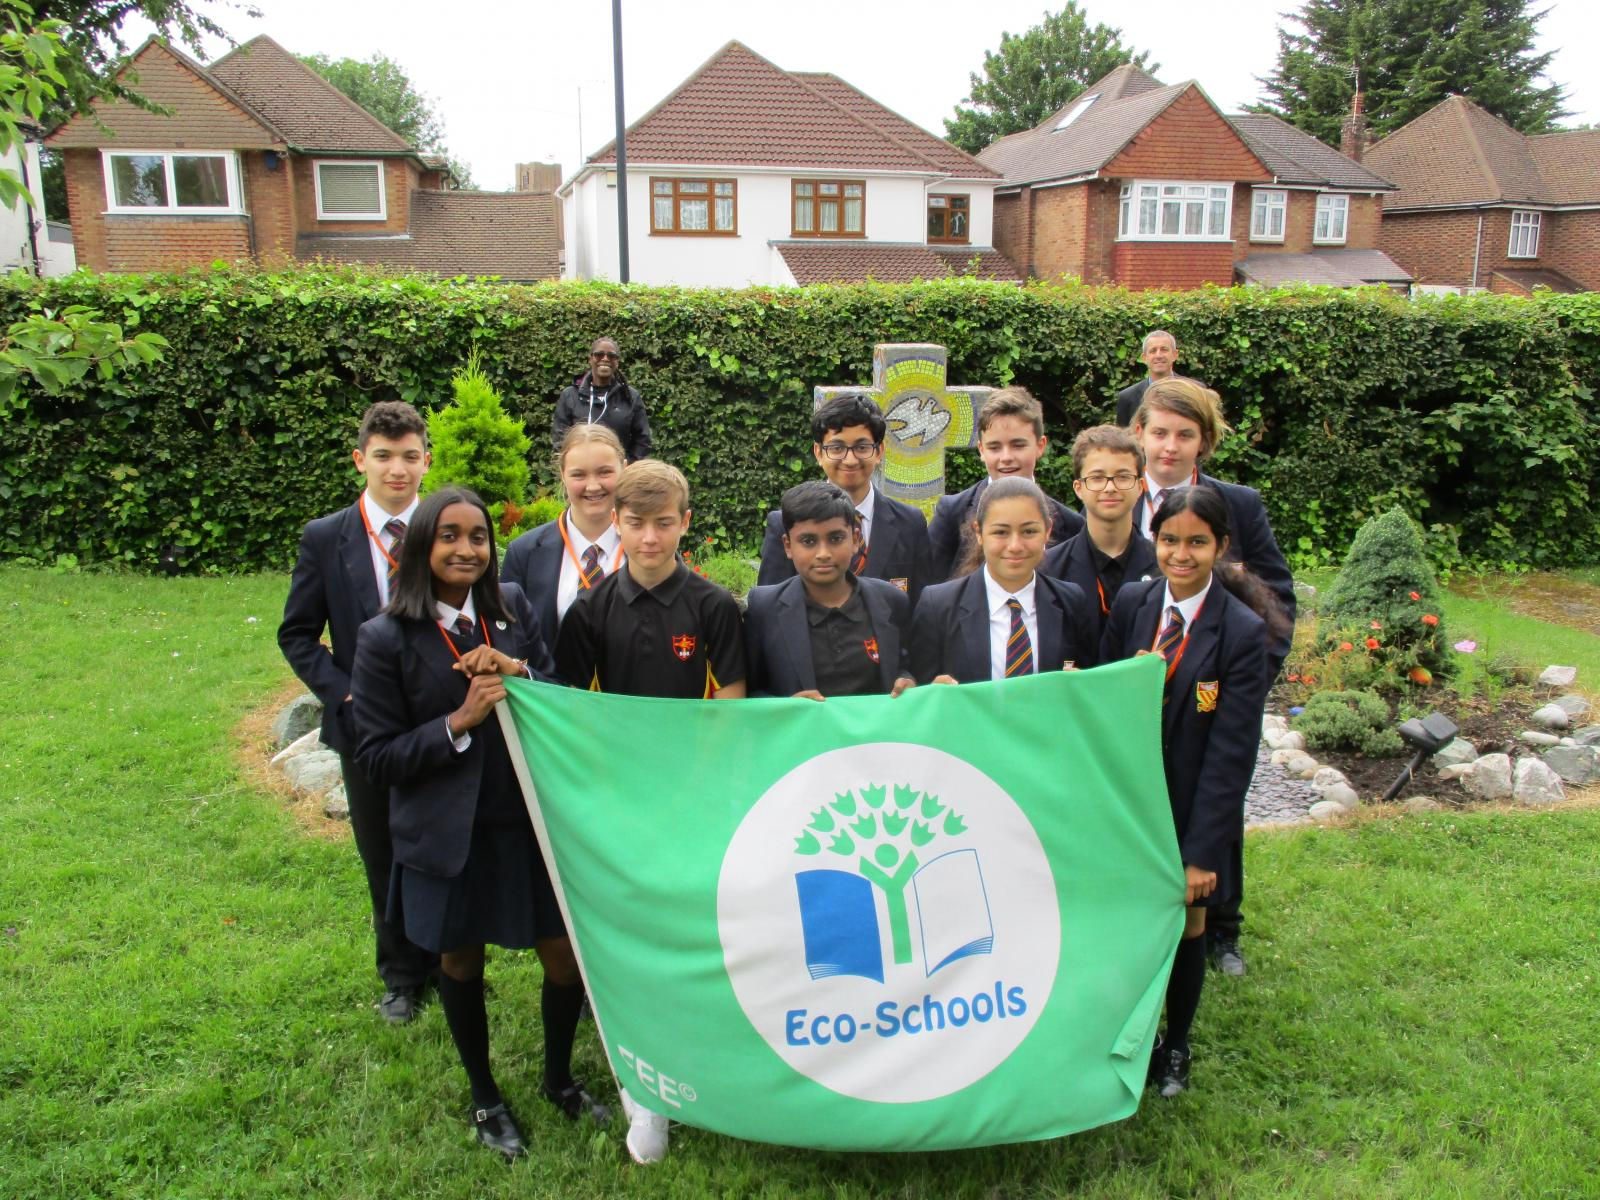 Kenton school achieves green award for fifth year running - Diocese of Westminster